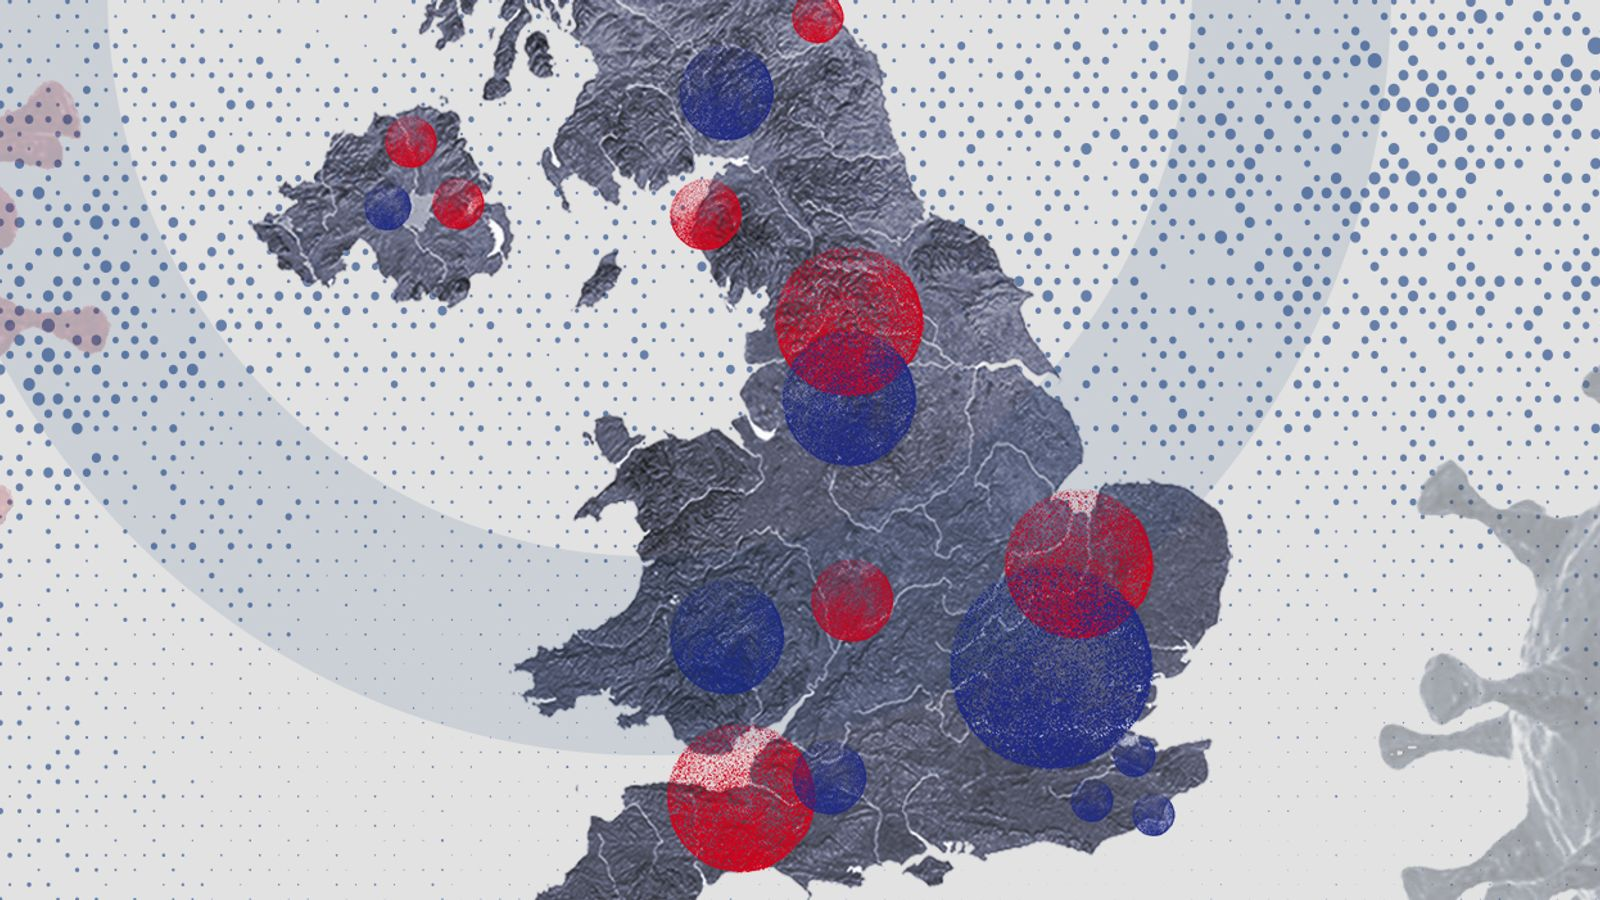 Coronavirus: The UK's current COVID-19 hotspots - and how your area compares